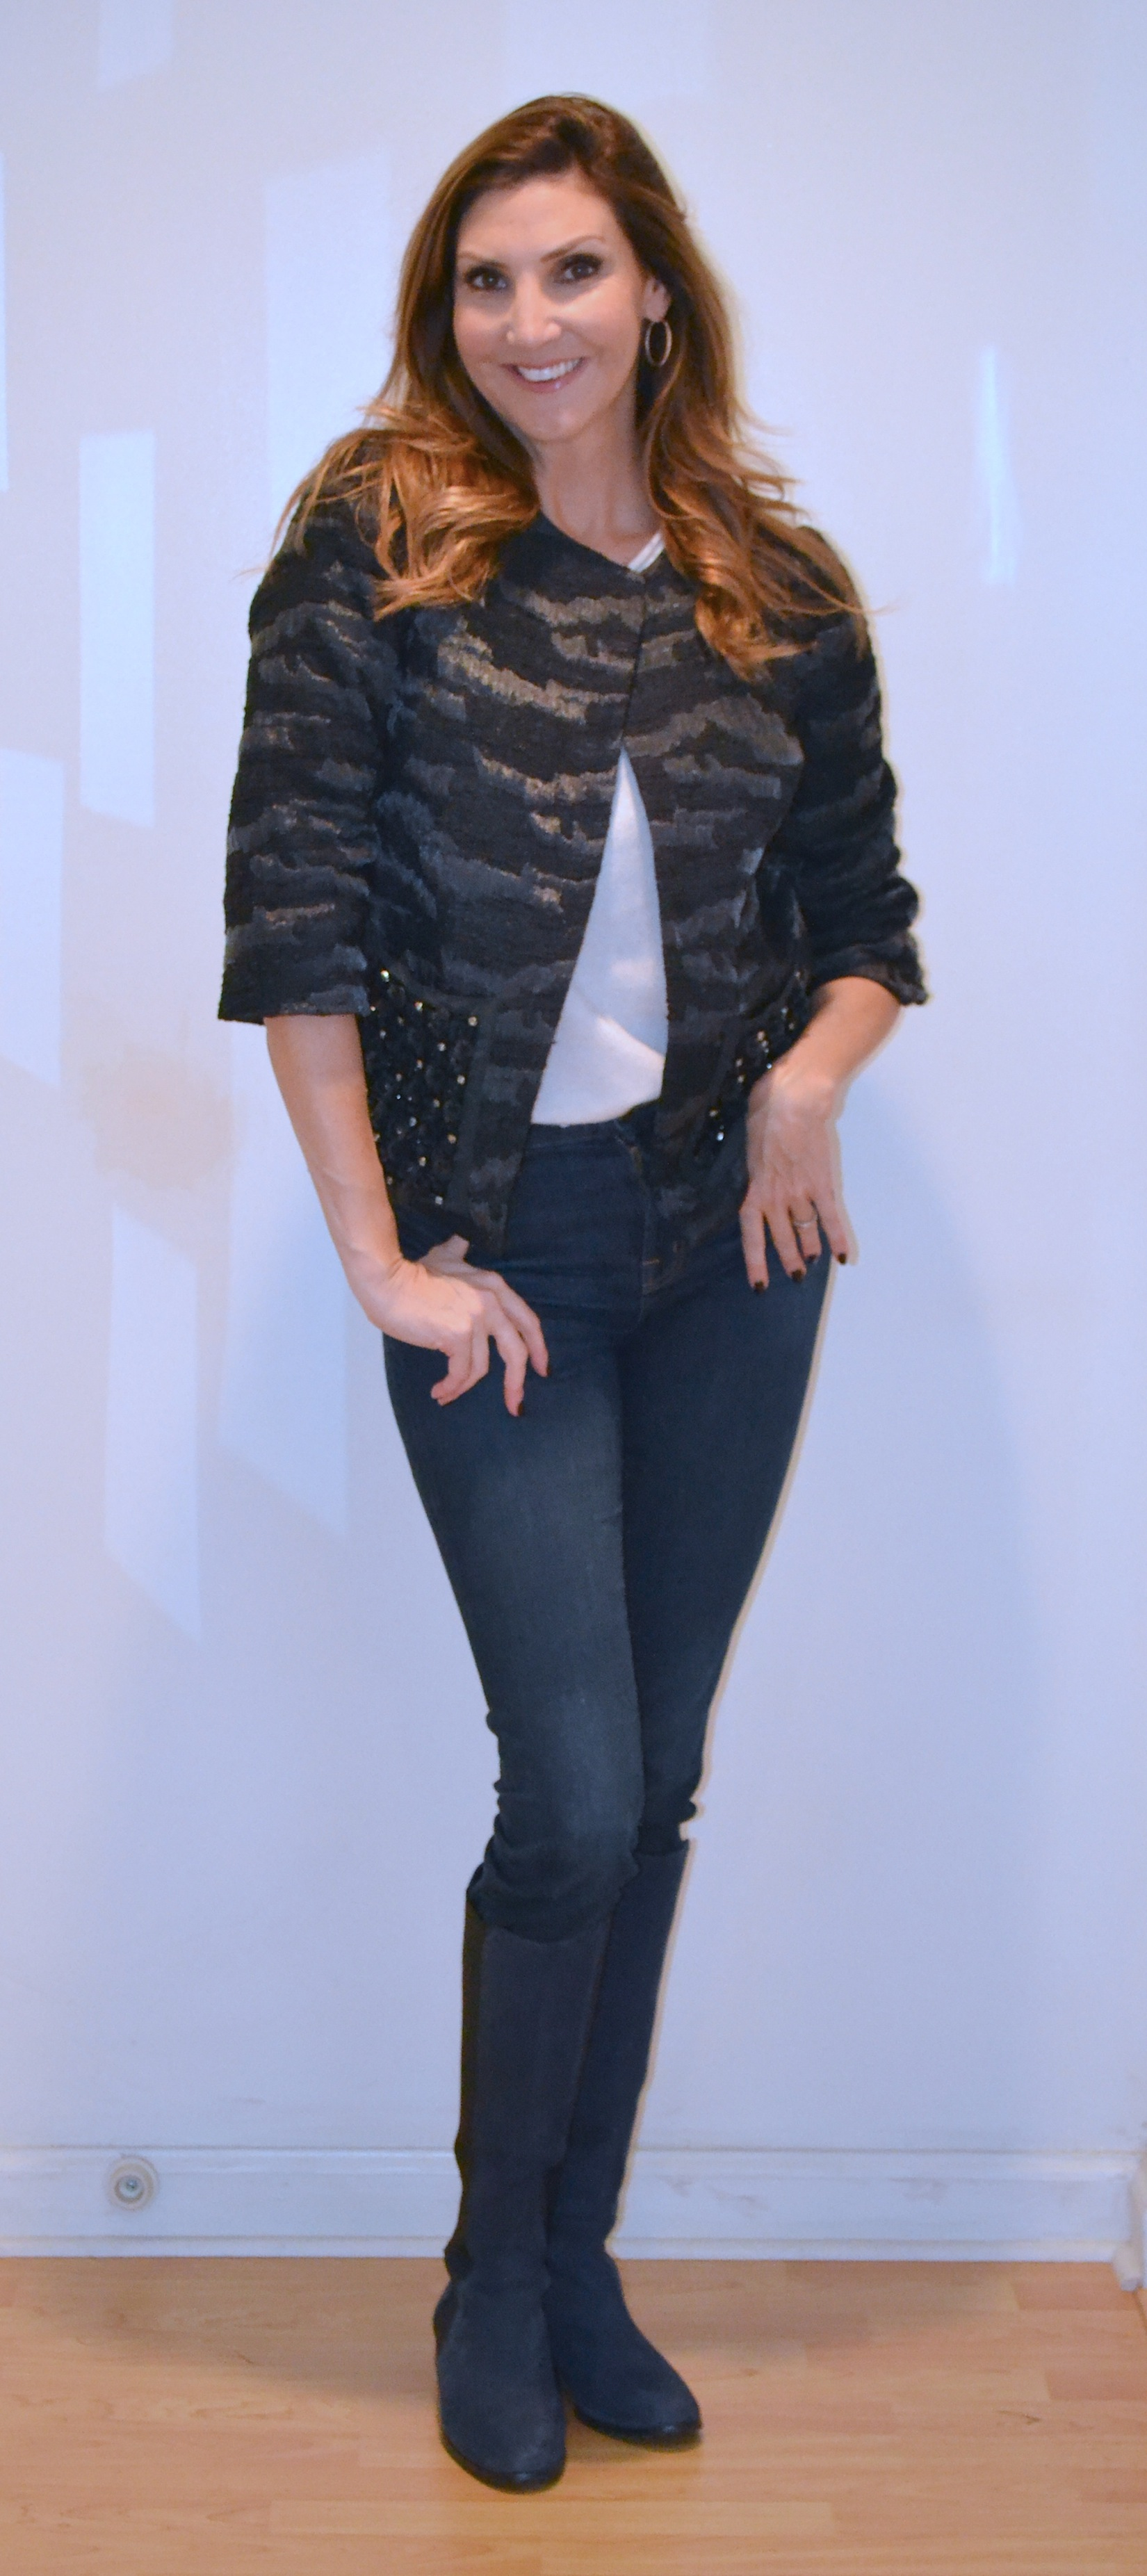 Heather McDonald in LOGO by Lori Goldstein Jacket for QVC